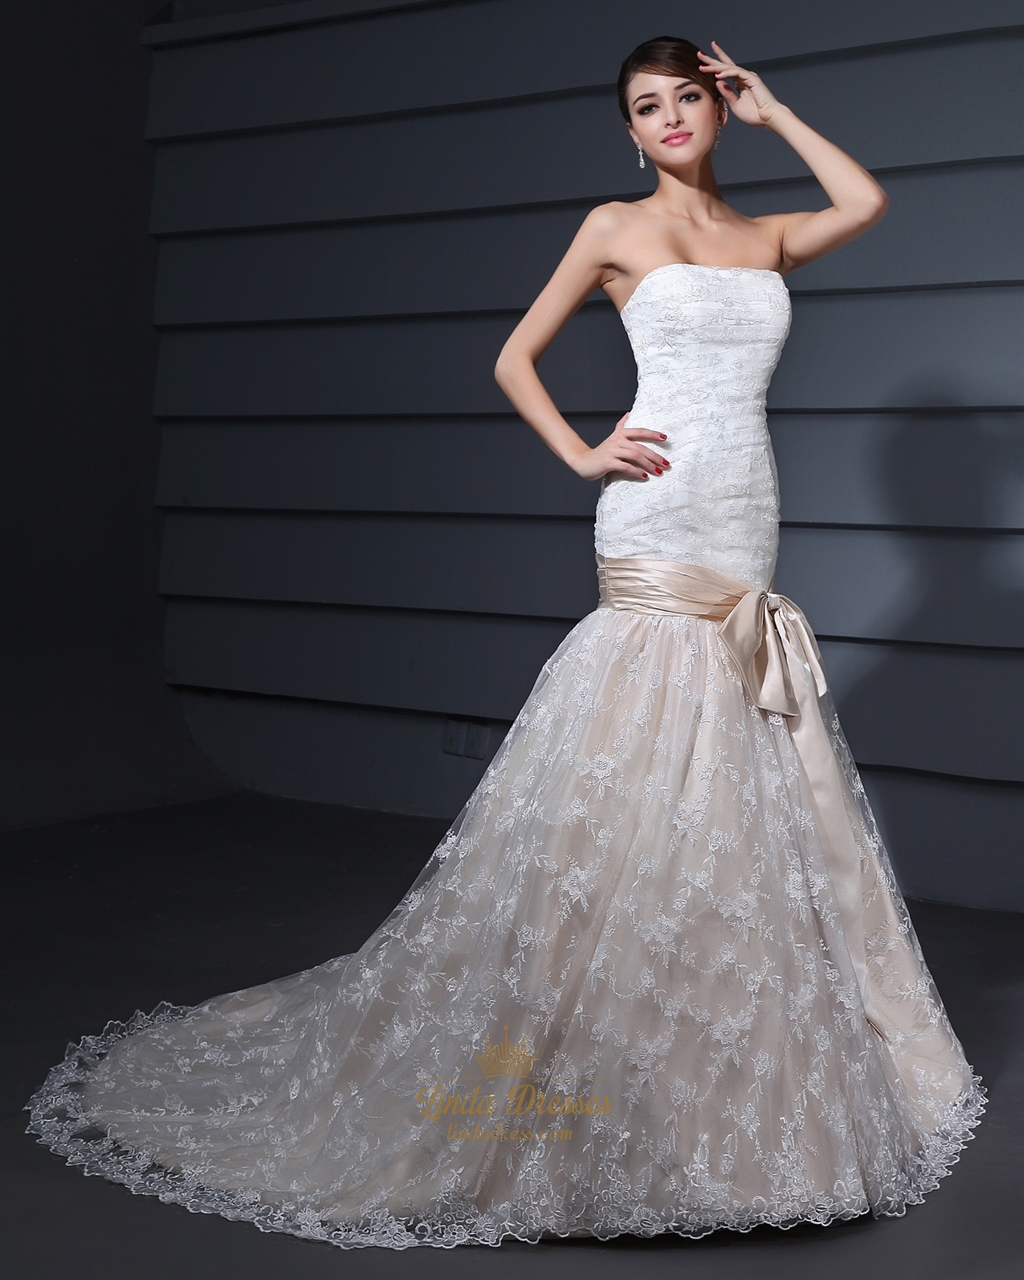 Champagne Vintage Wedding Dresses: Vintage White And Champagne Lace Mermaid Strapless Wedding